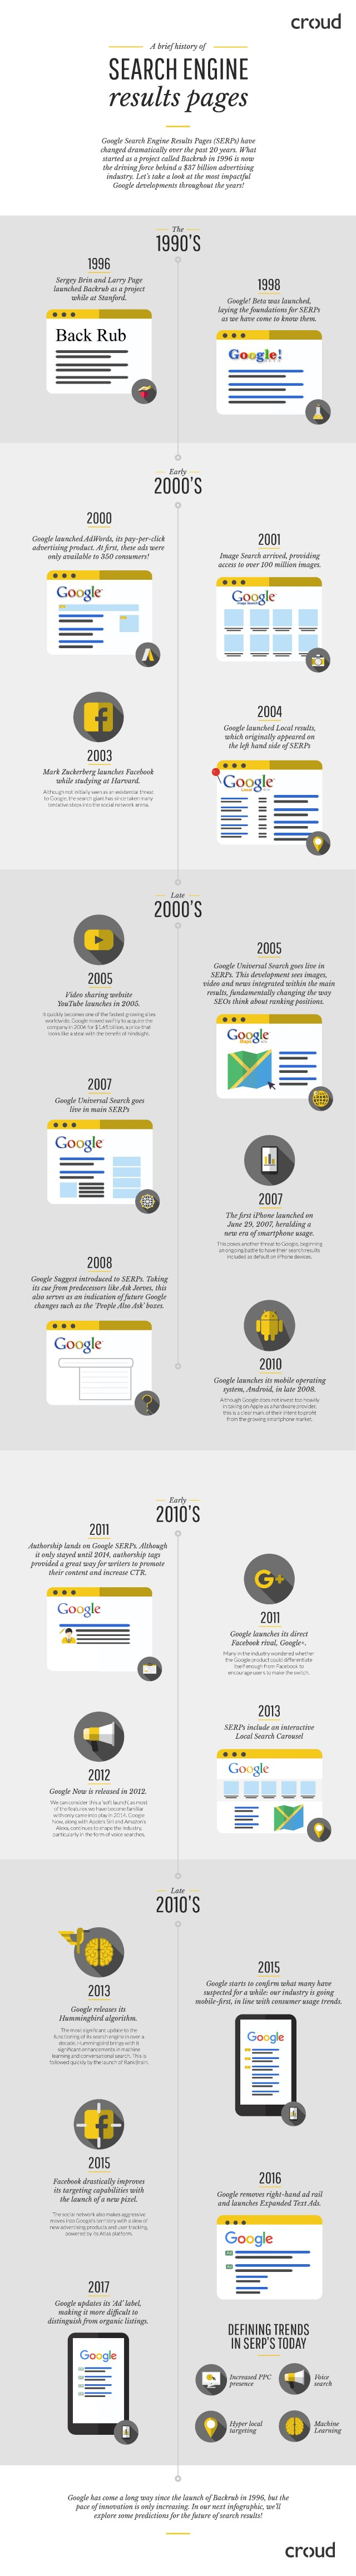 History of the Google SERP